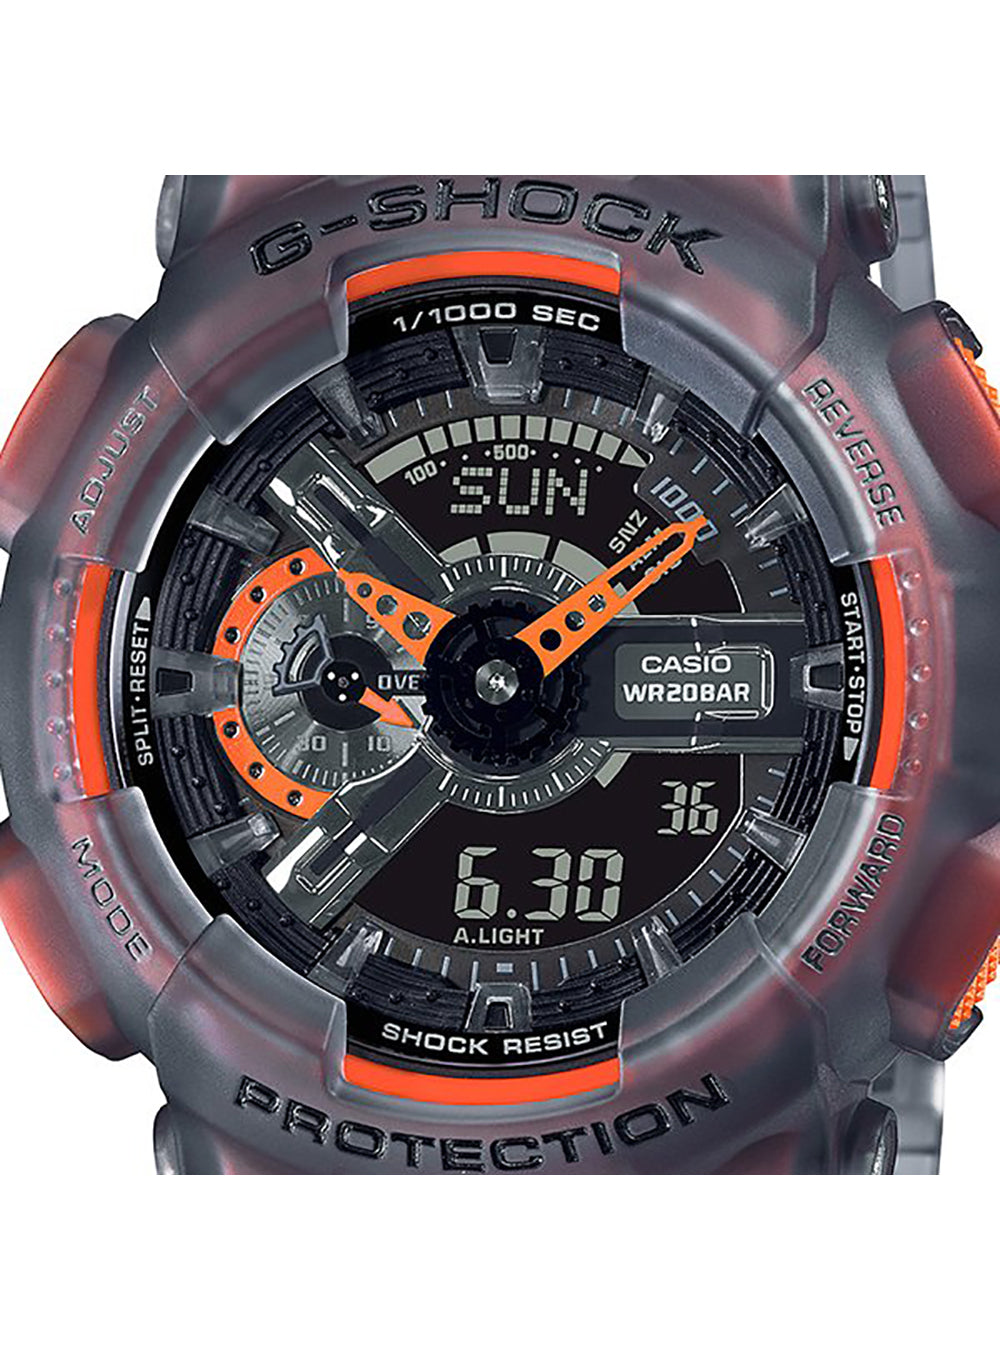 CASIO G-SHOCK Color Skelton Series GA-110LS-1AJF JDM